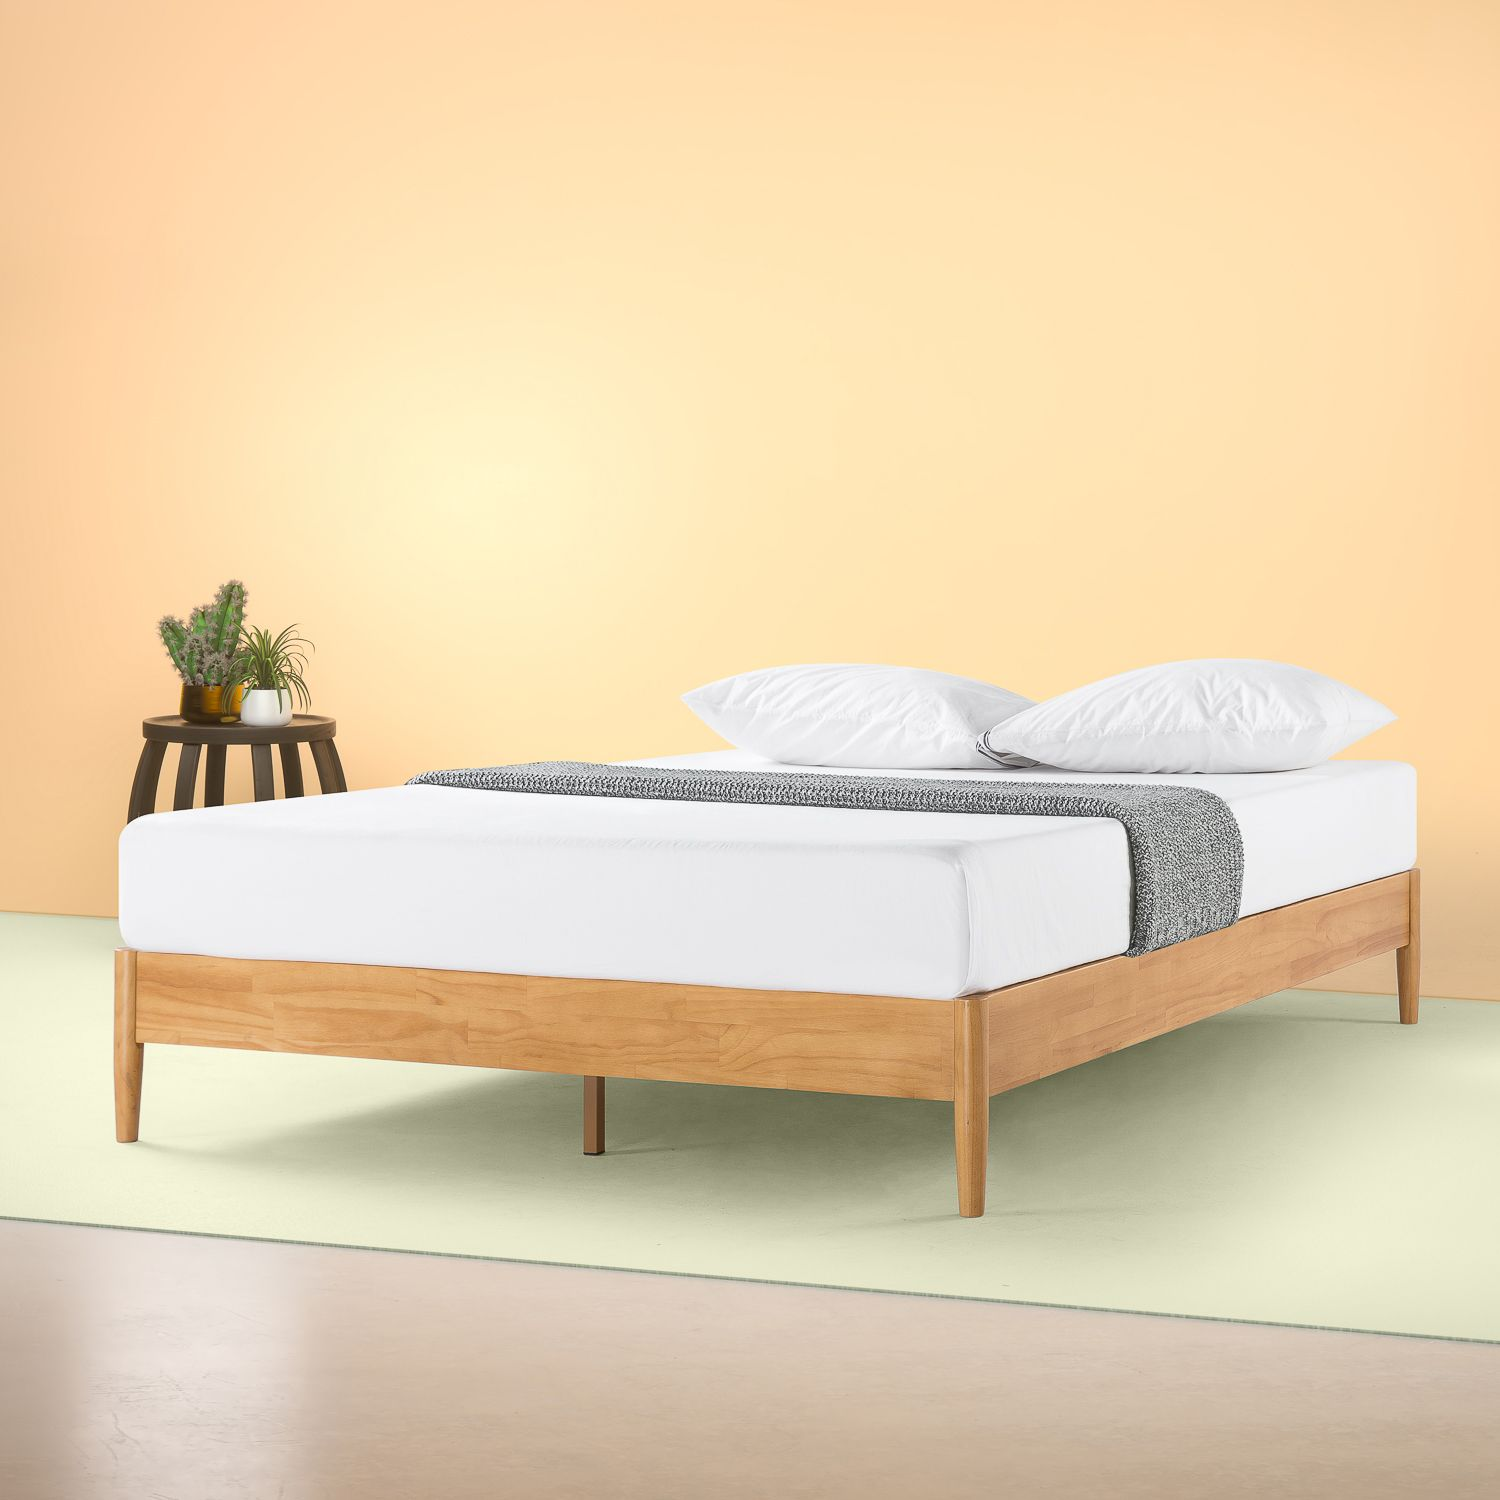 Zinus Amelia 12 Wood Platform Bed Queen Walmart Com In 2020